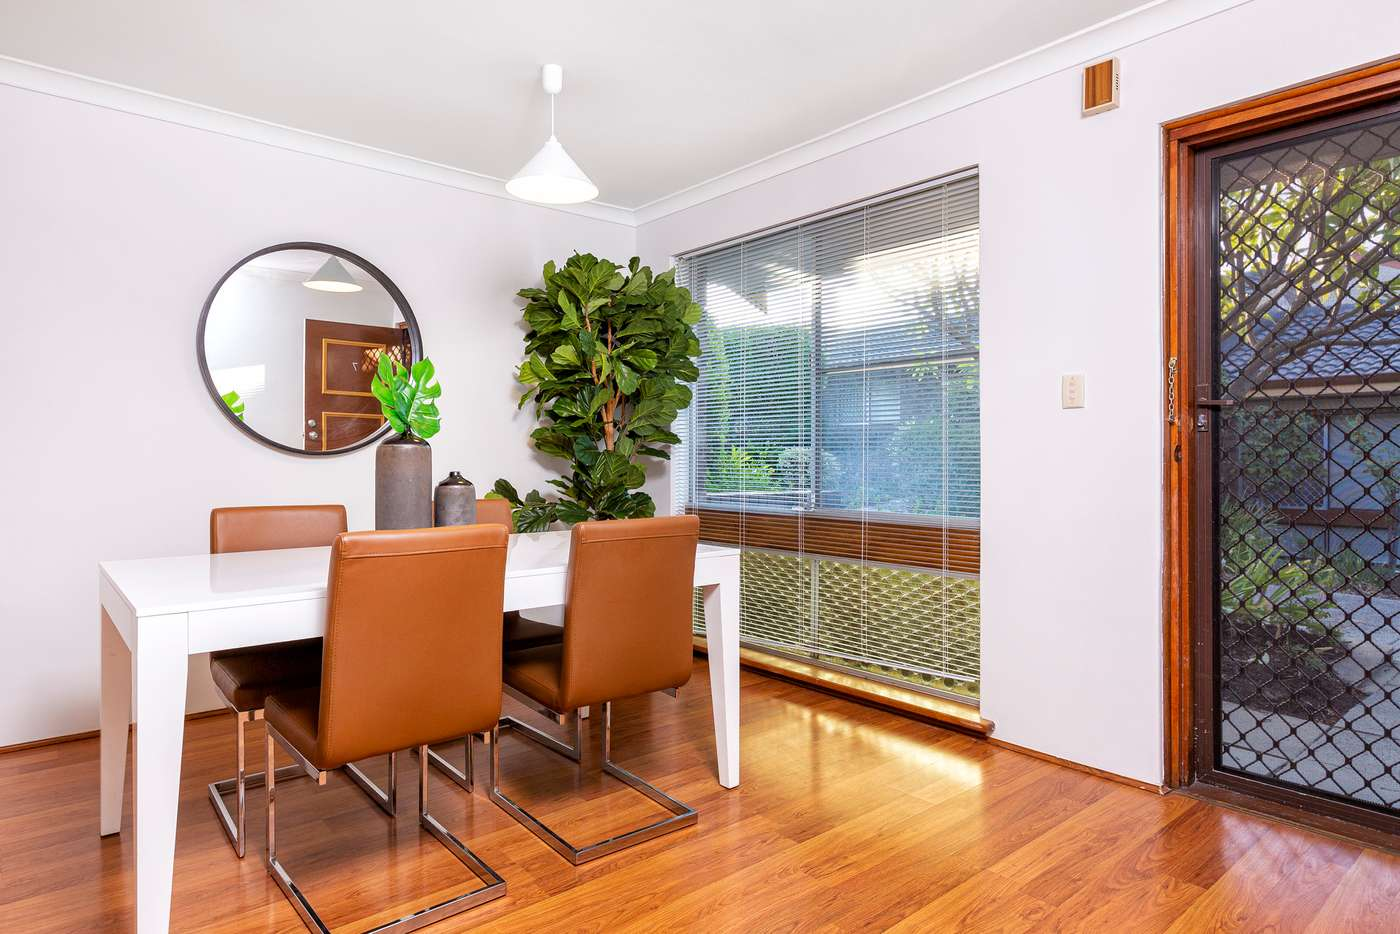 Fifth view of Homely villa listing, 7/54 Gwenyfred Road, Kensington WA 6151